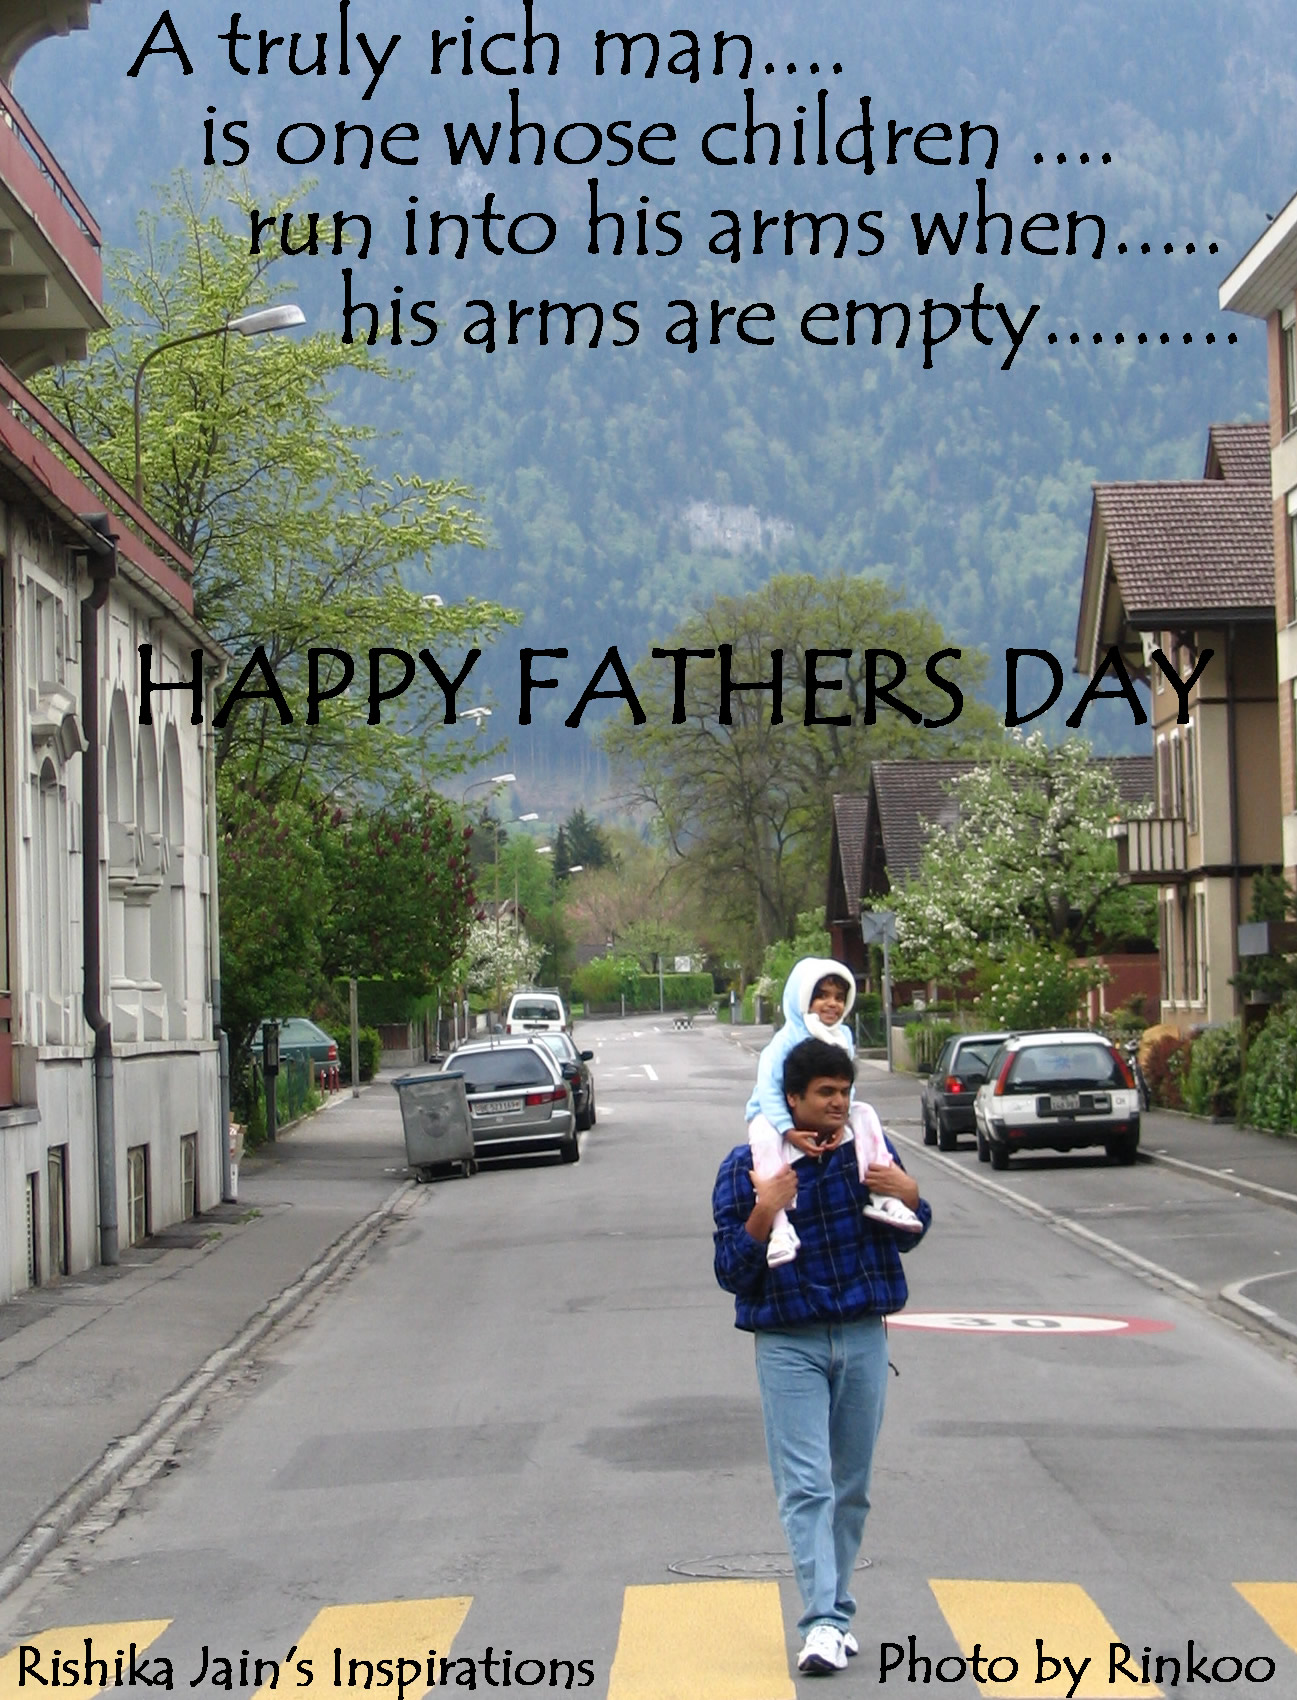 Fathers Day Quotes, Father's Day Quotes, Happy Fathers Day Sayings, Inspirational Pictures, Motivational Thoughts